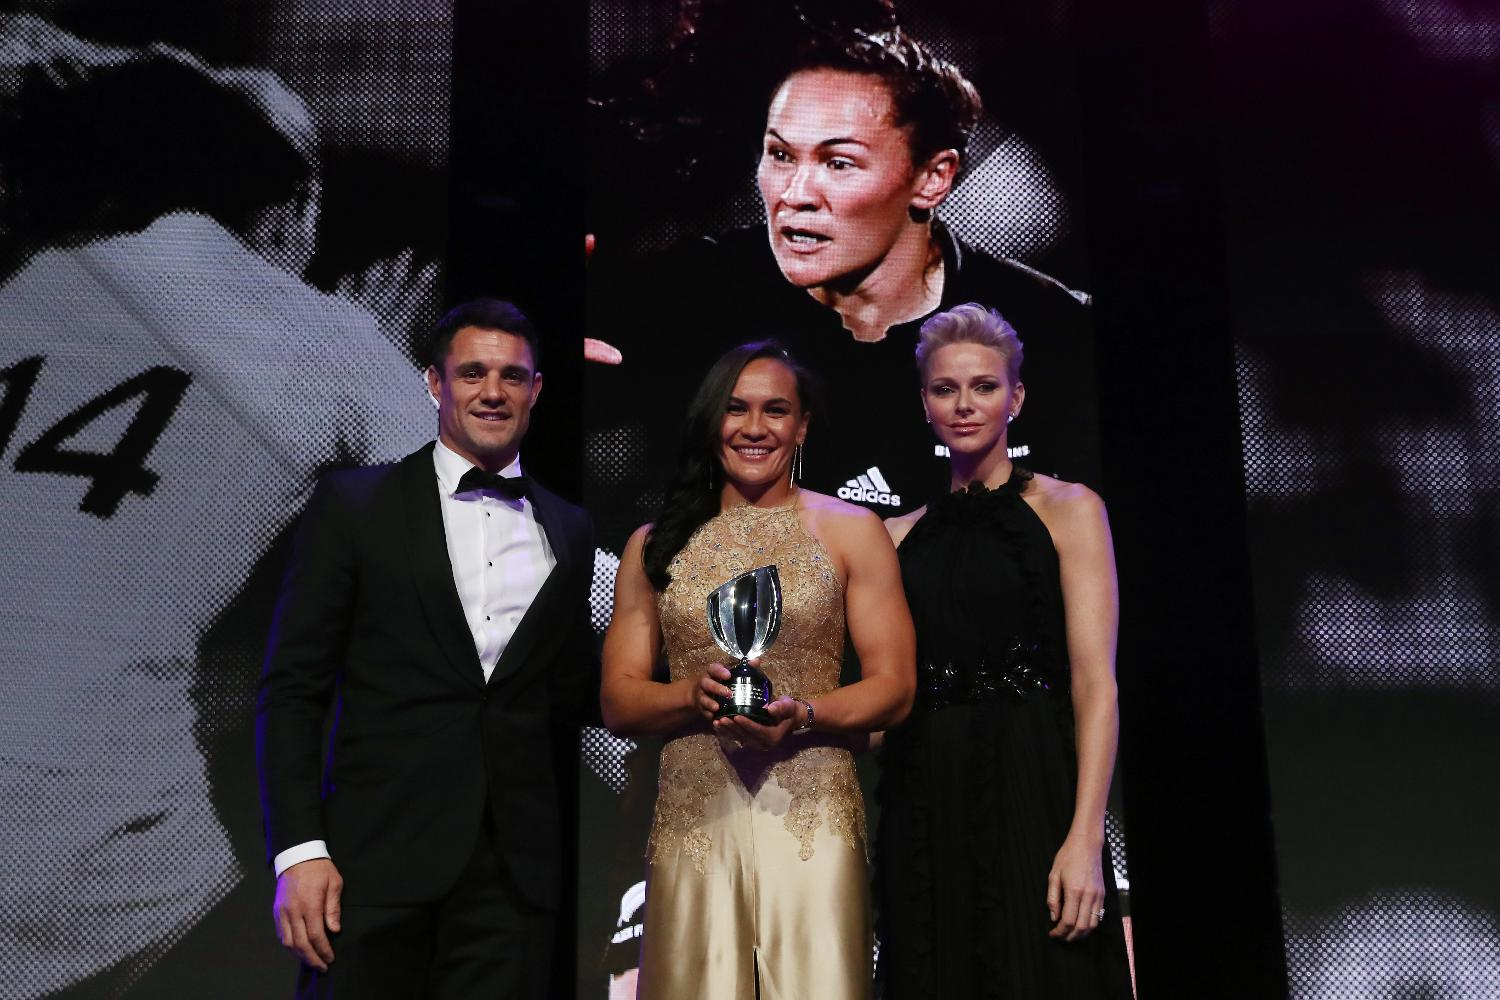 World Rugby Women's Player of the Year: Portia Woodman, New Zealand